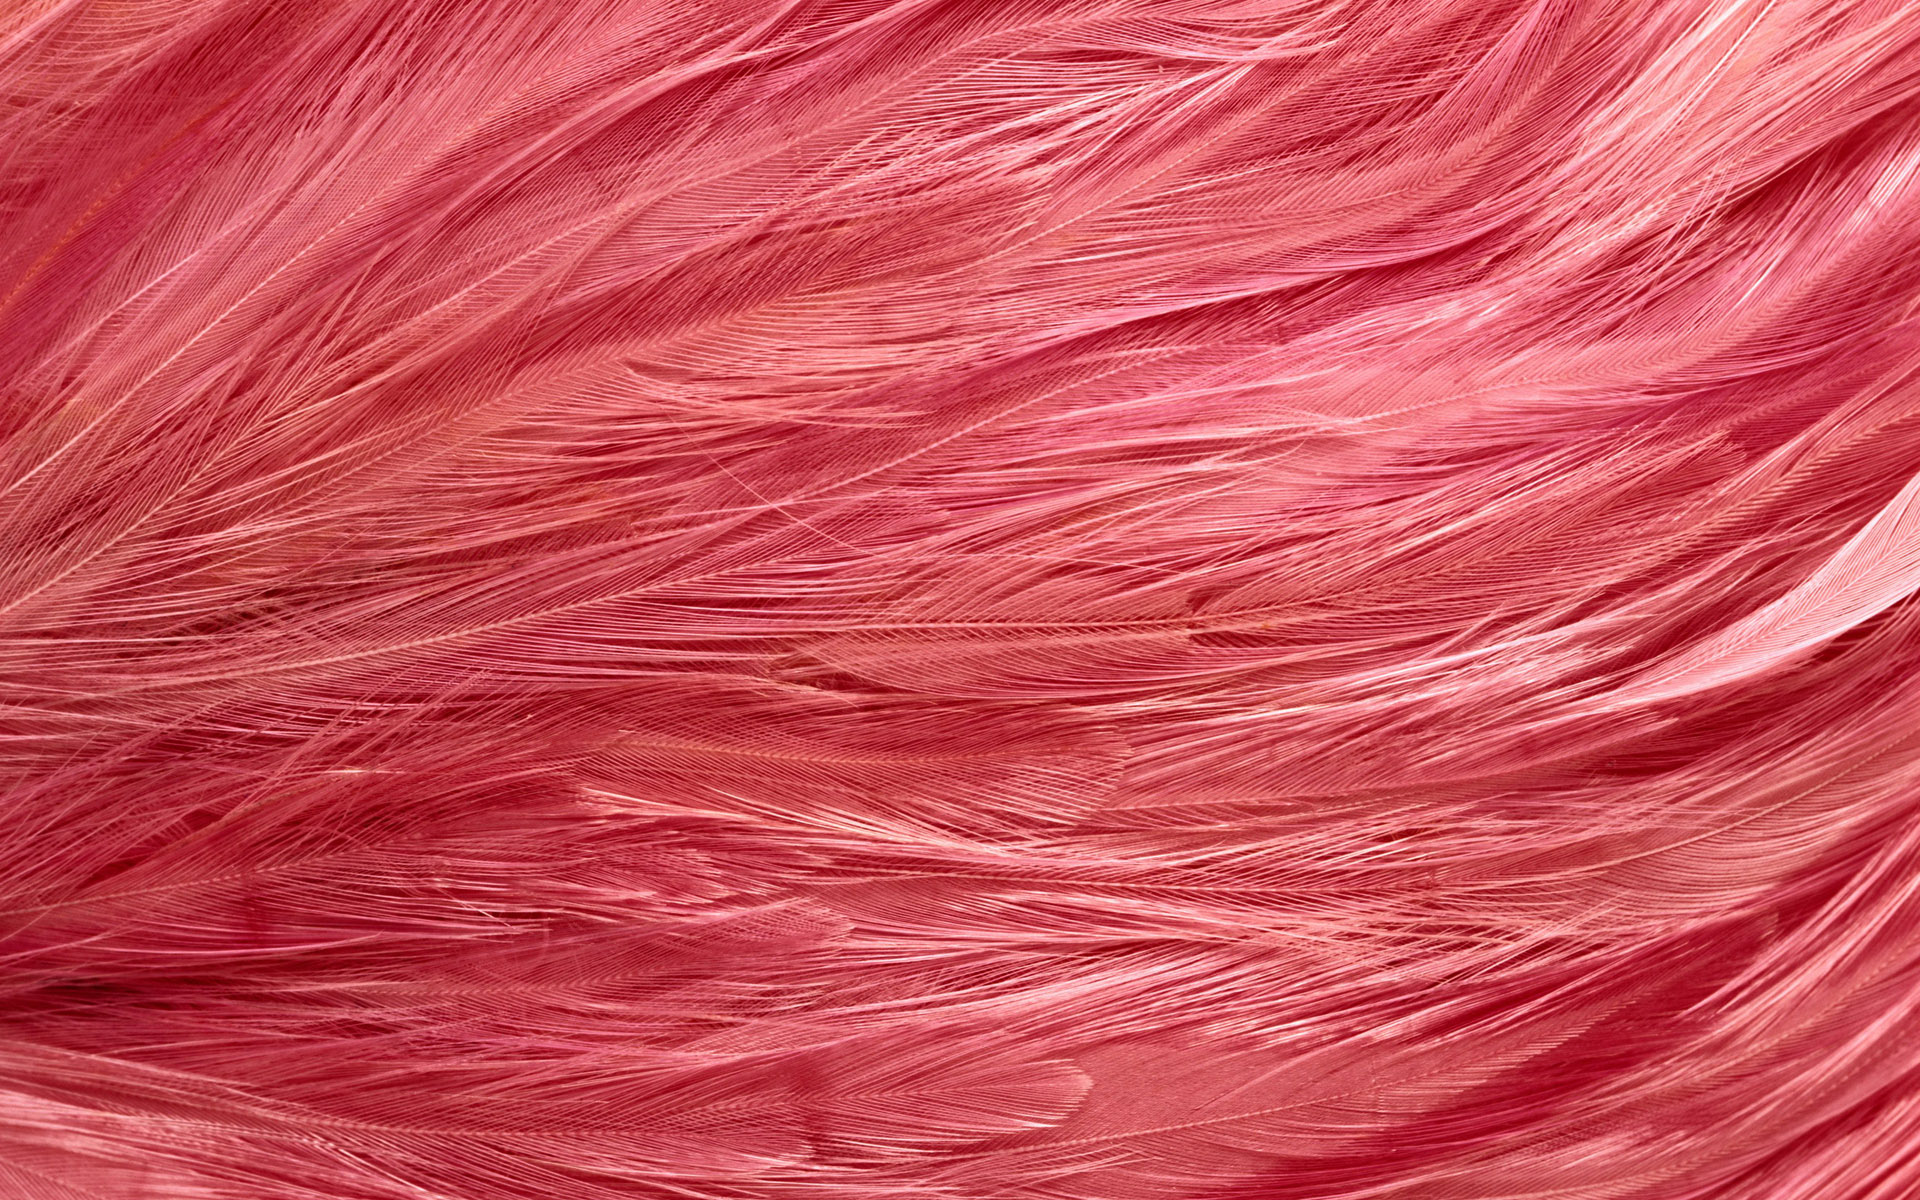 розовые перья, текстура пера, скачать фон, фото, изображение, pink feather background texture